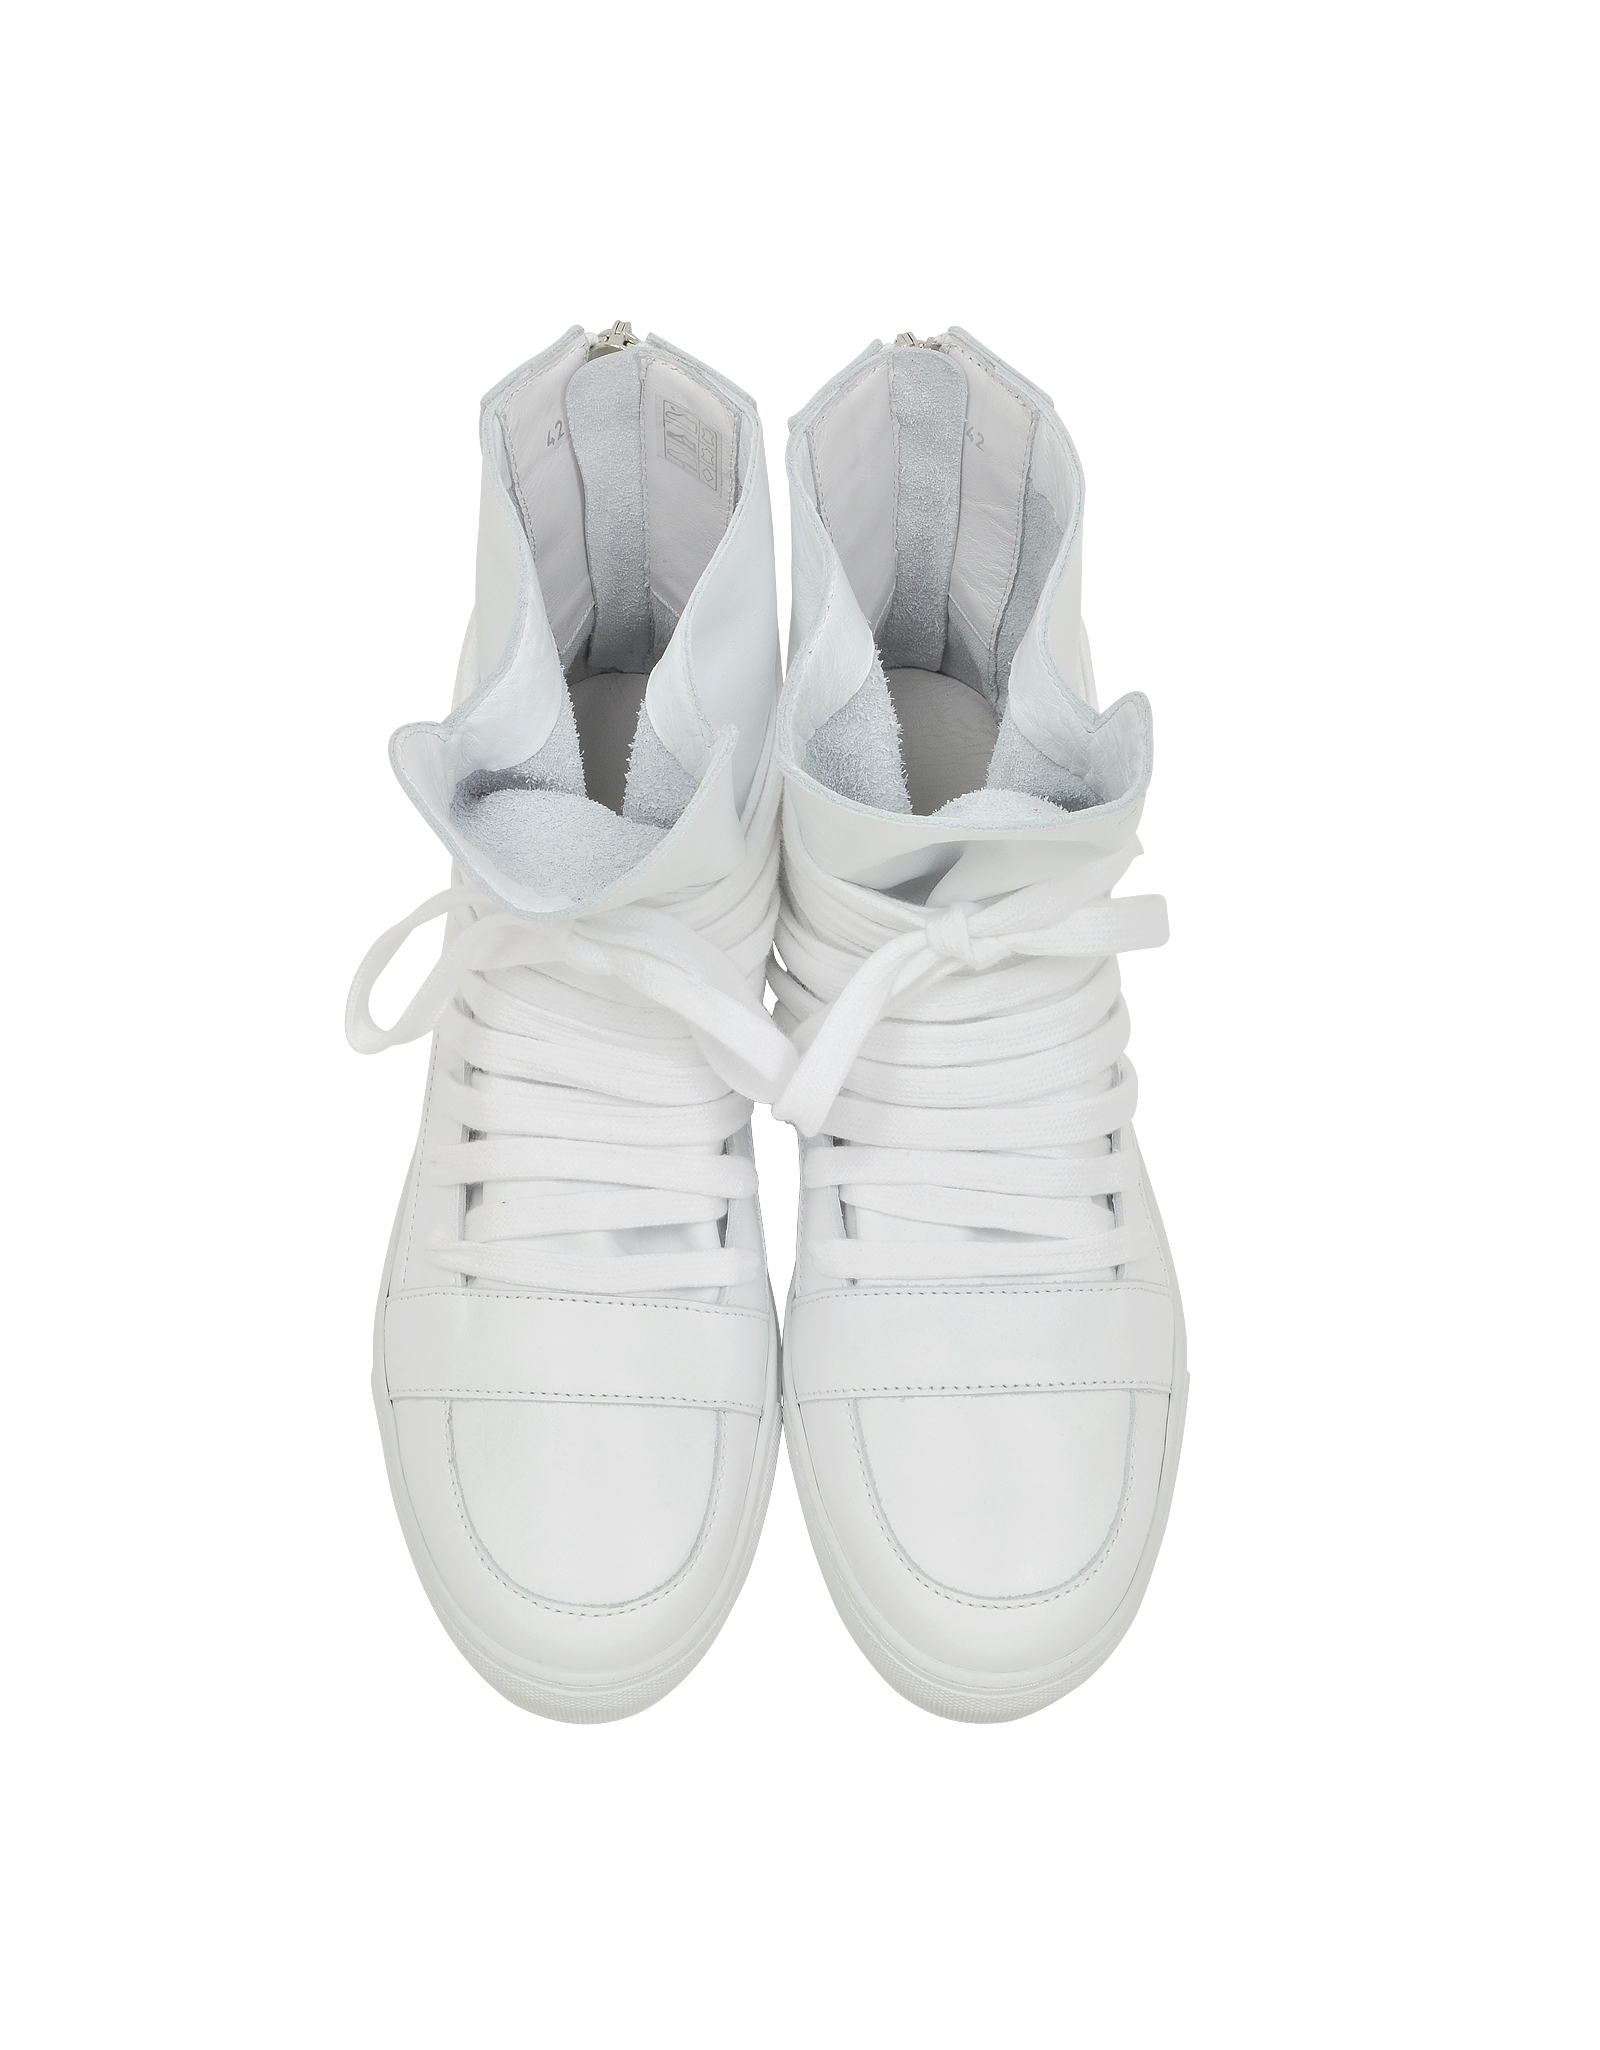 d96d357ede8388 Kris Van Assche White High Top Multilaces Sneaker in White for Men ...